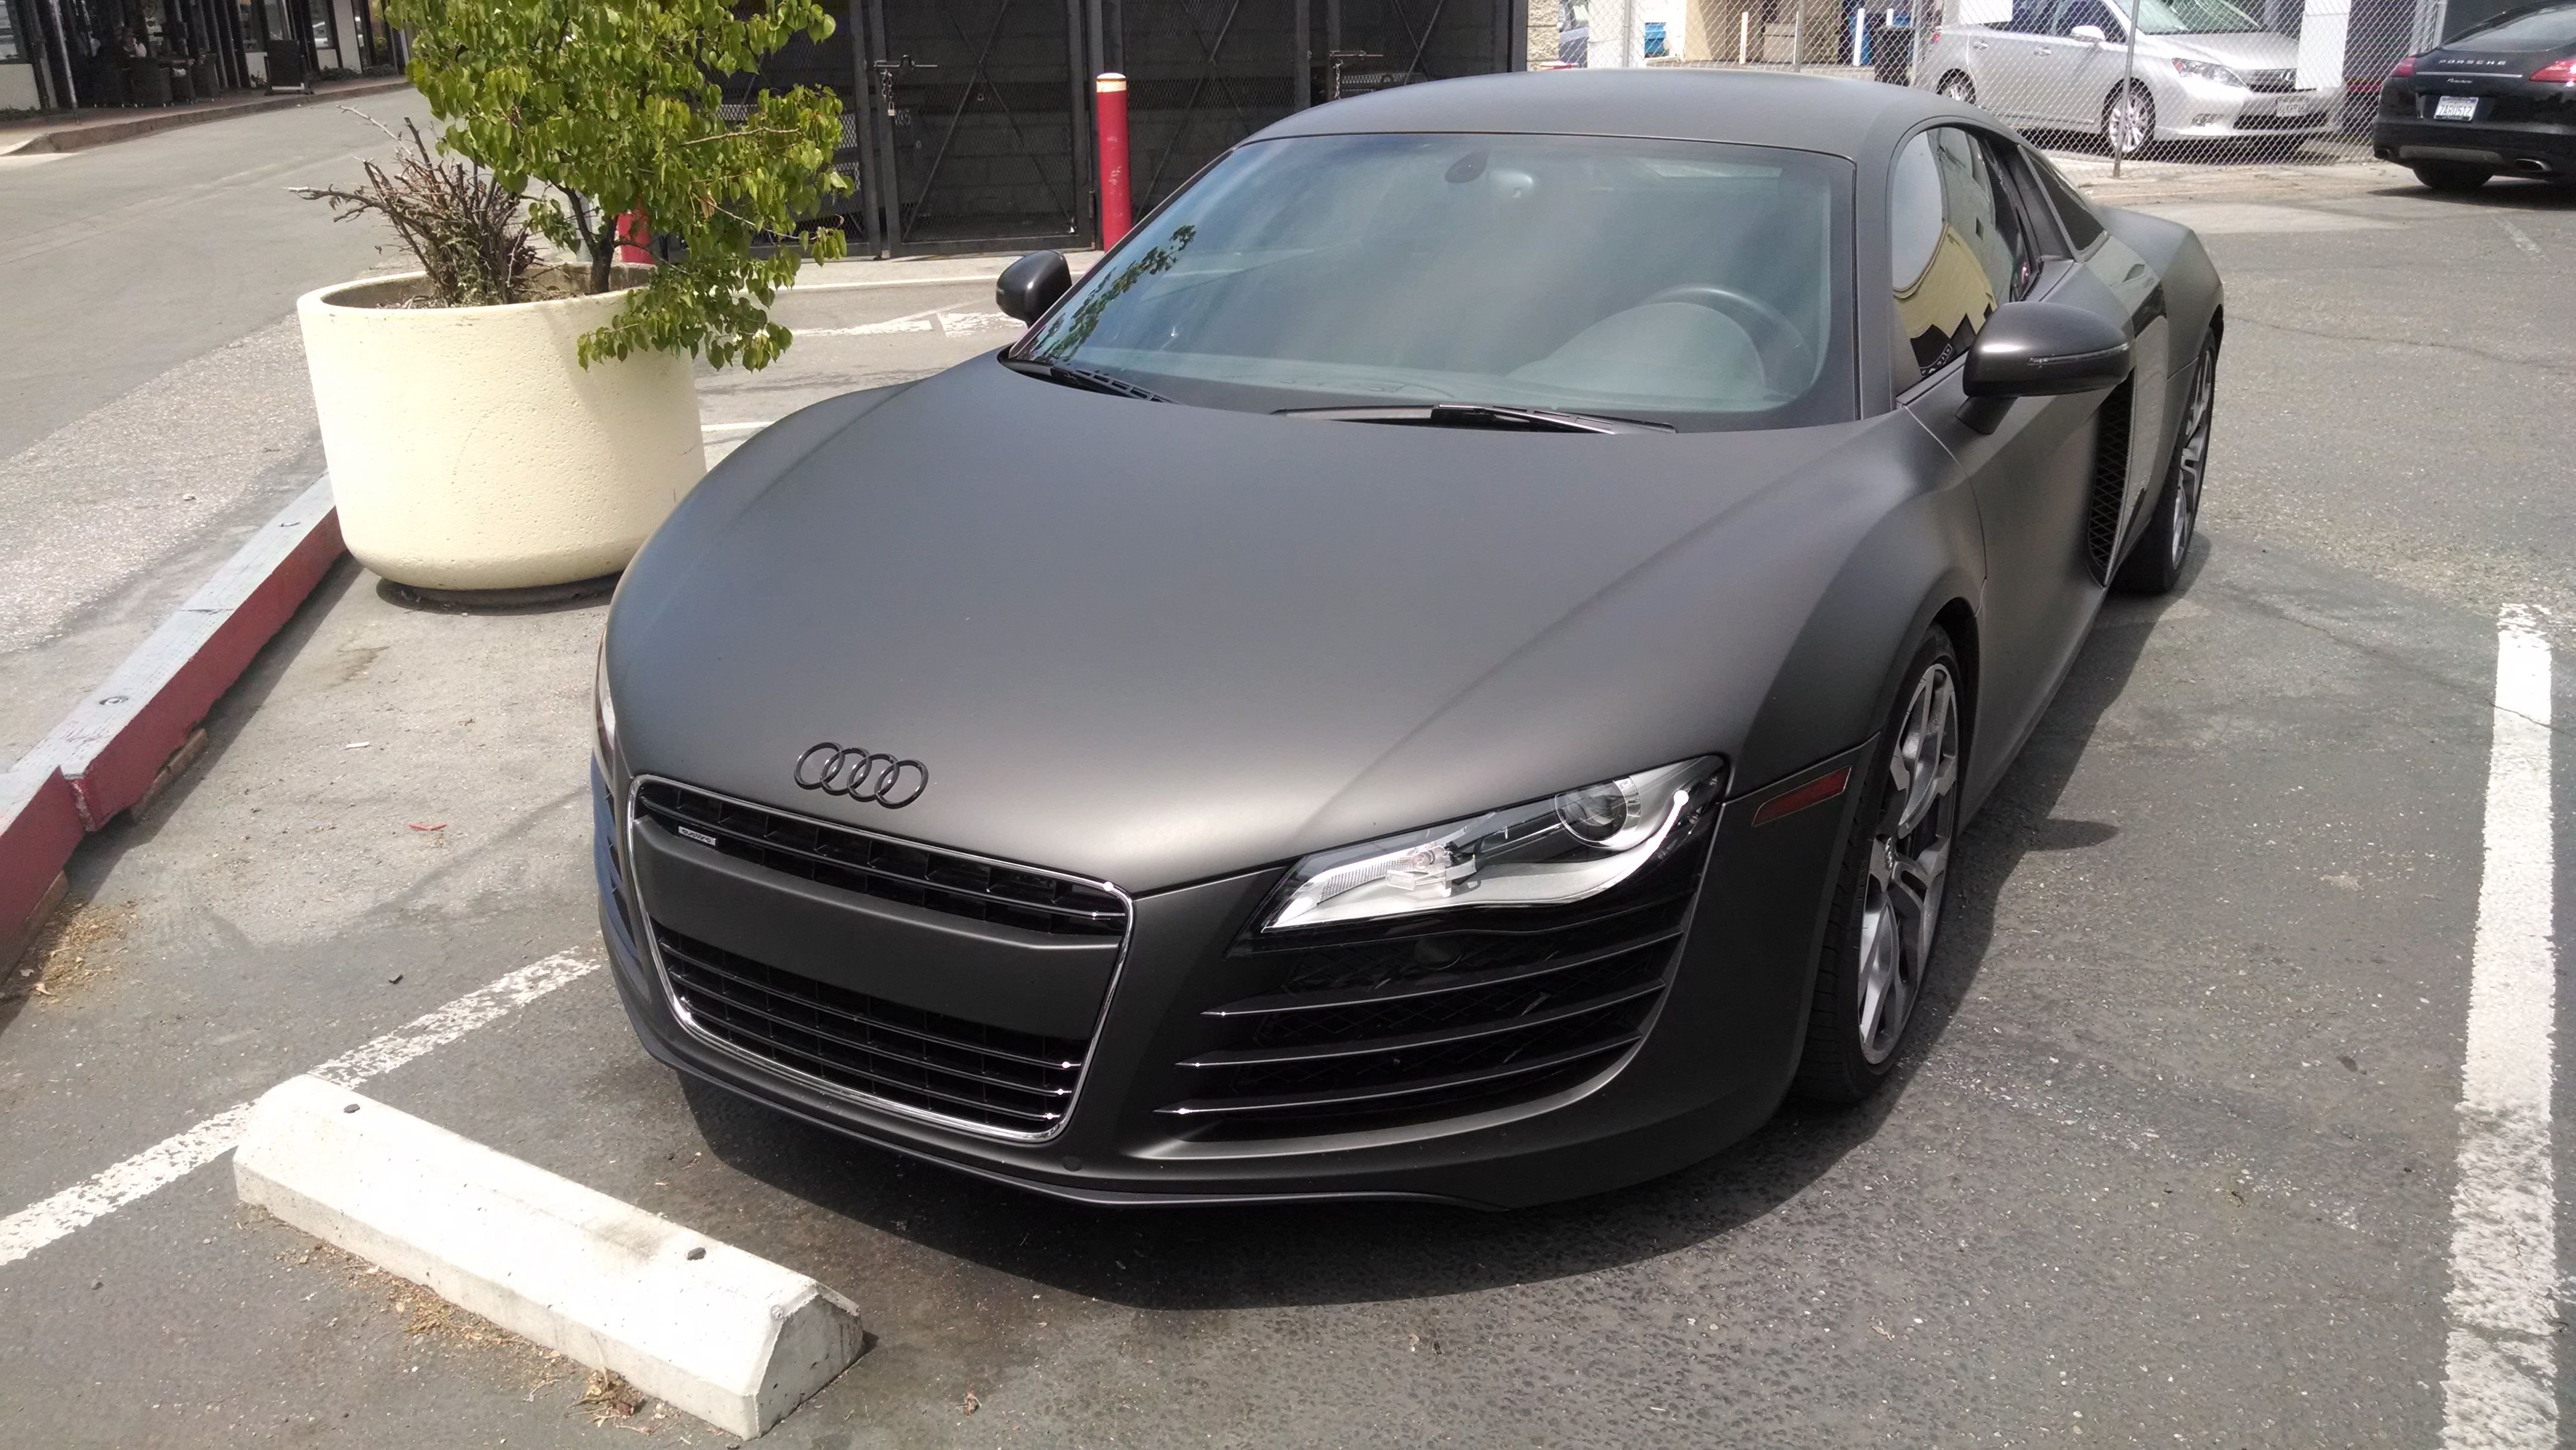 Matte-black Audi R8 awesomeness | Cars | Pinterest